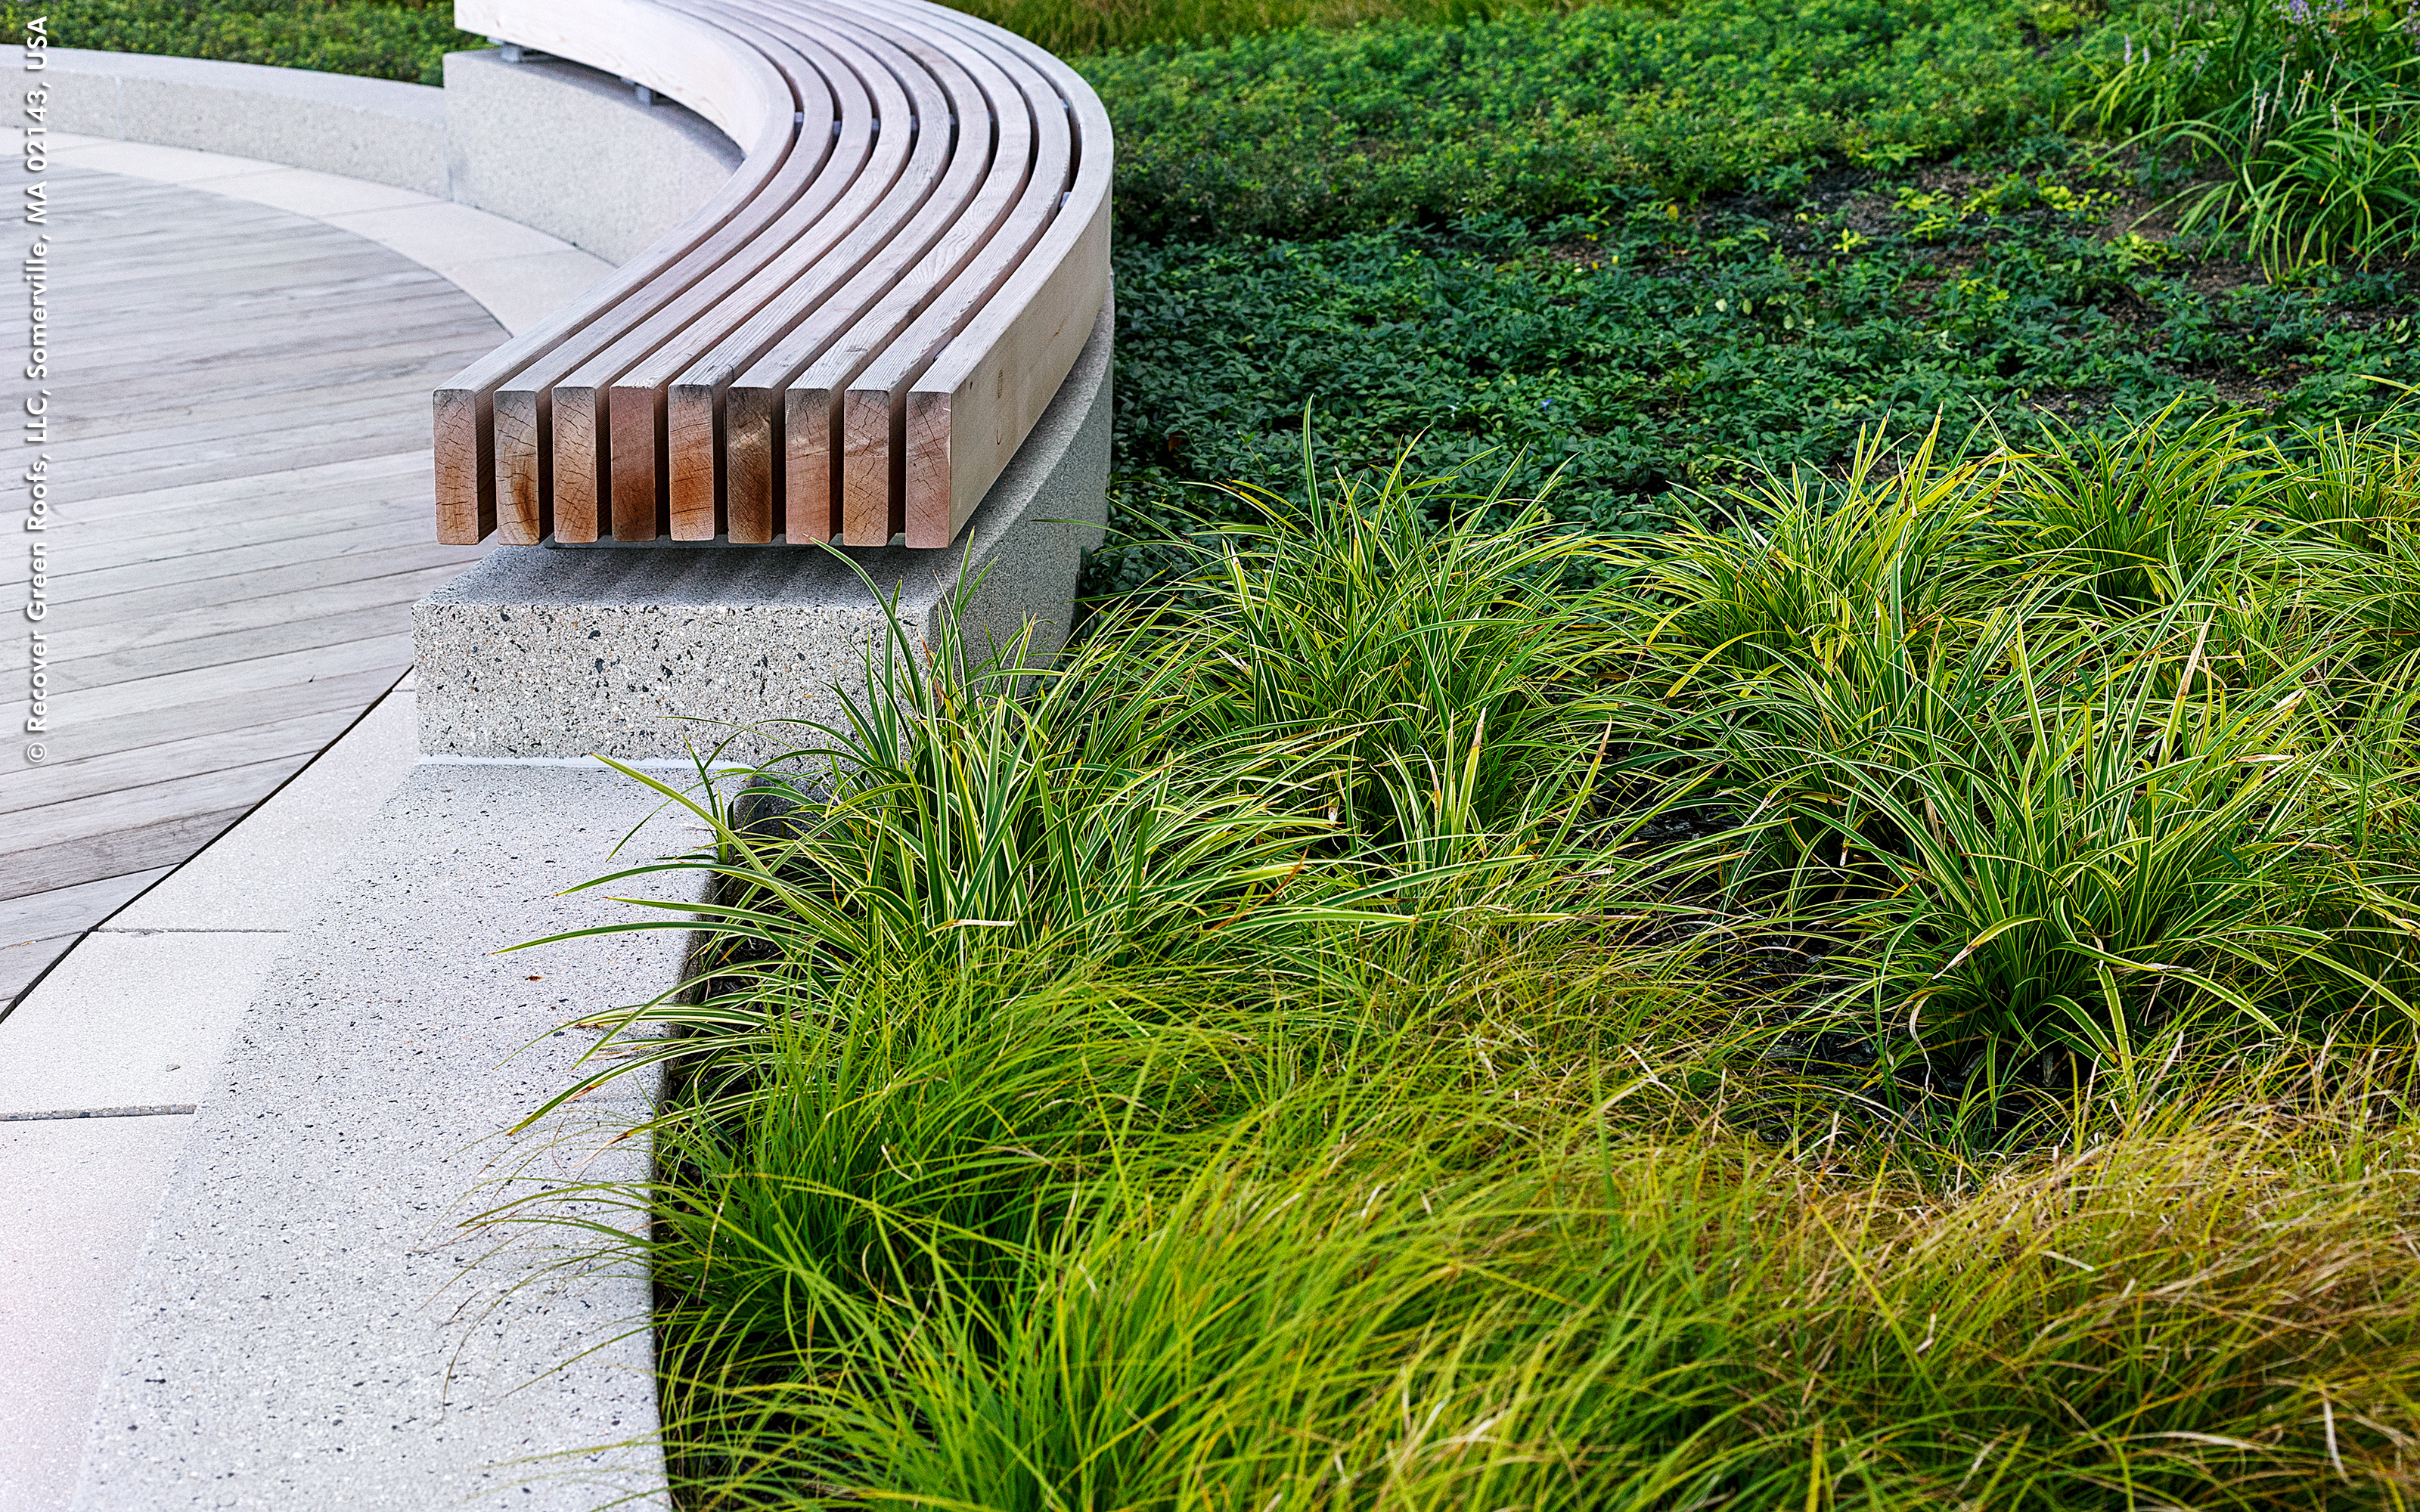 Curved bench and plant bed with grasses